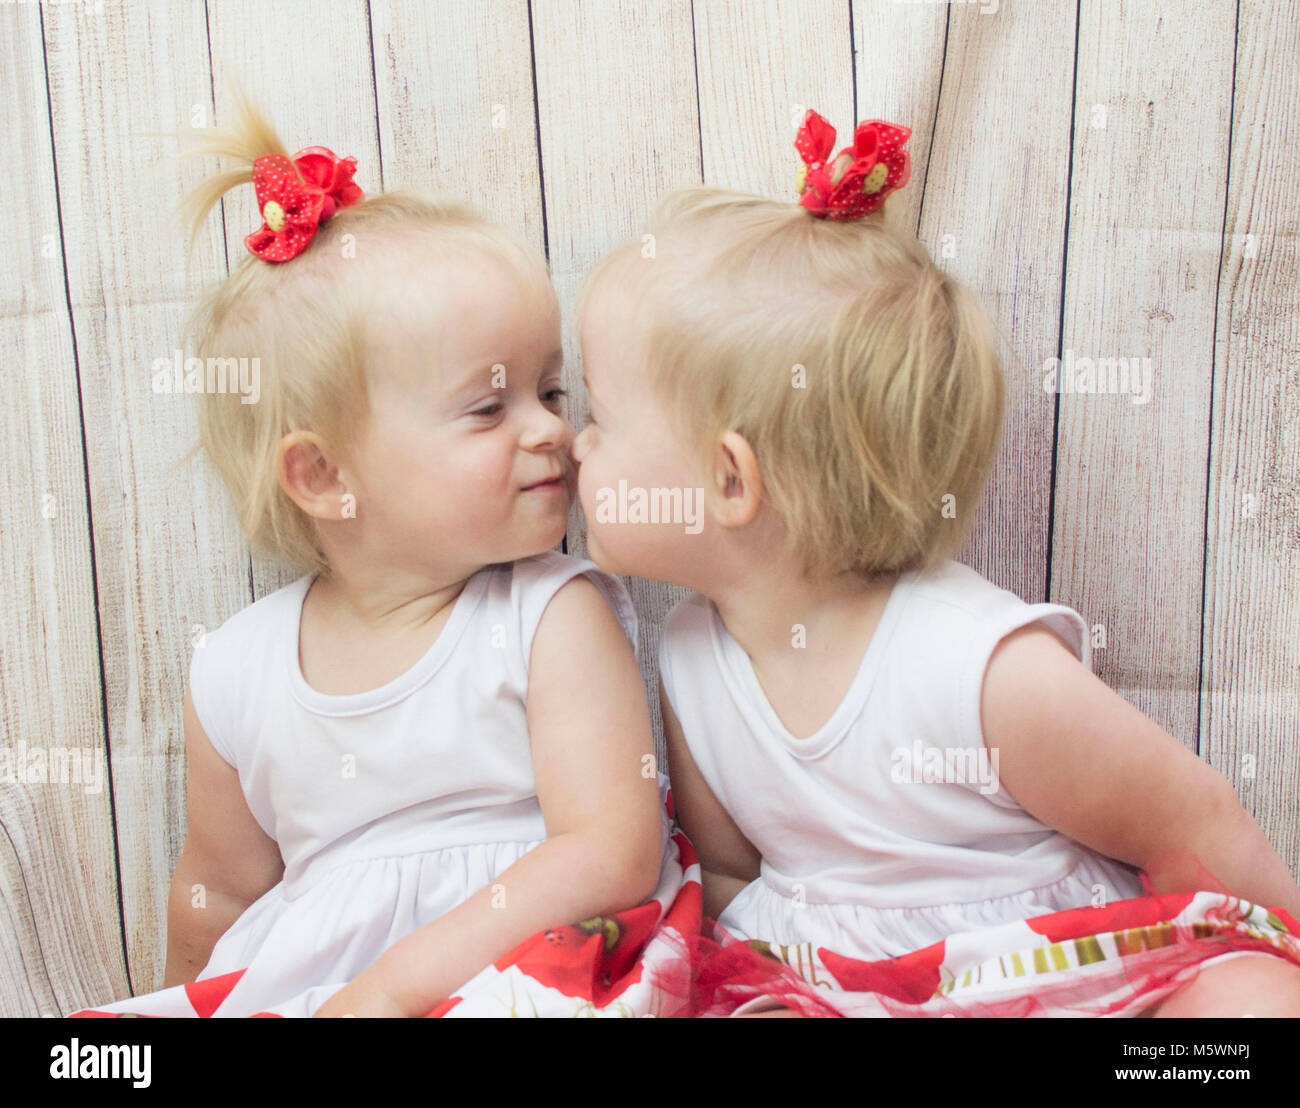 cute babies twins girls stock photo: 175742858 - alamy